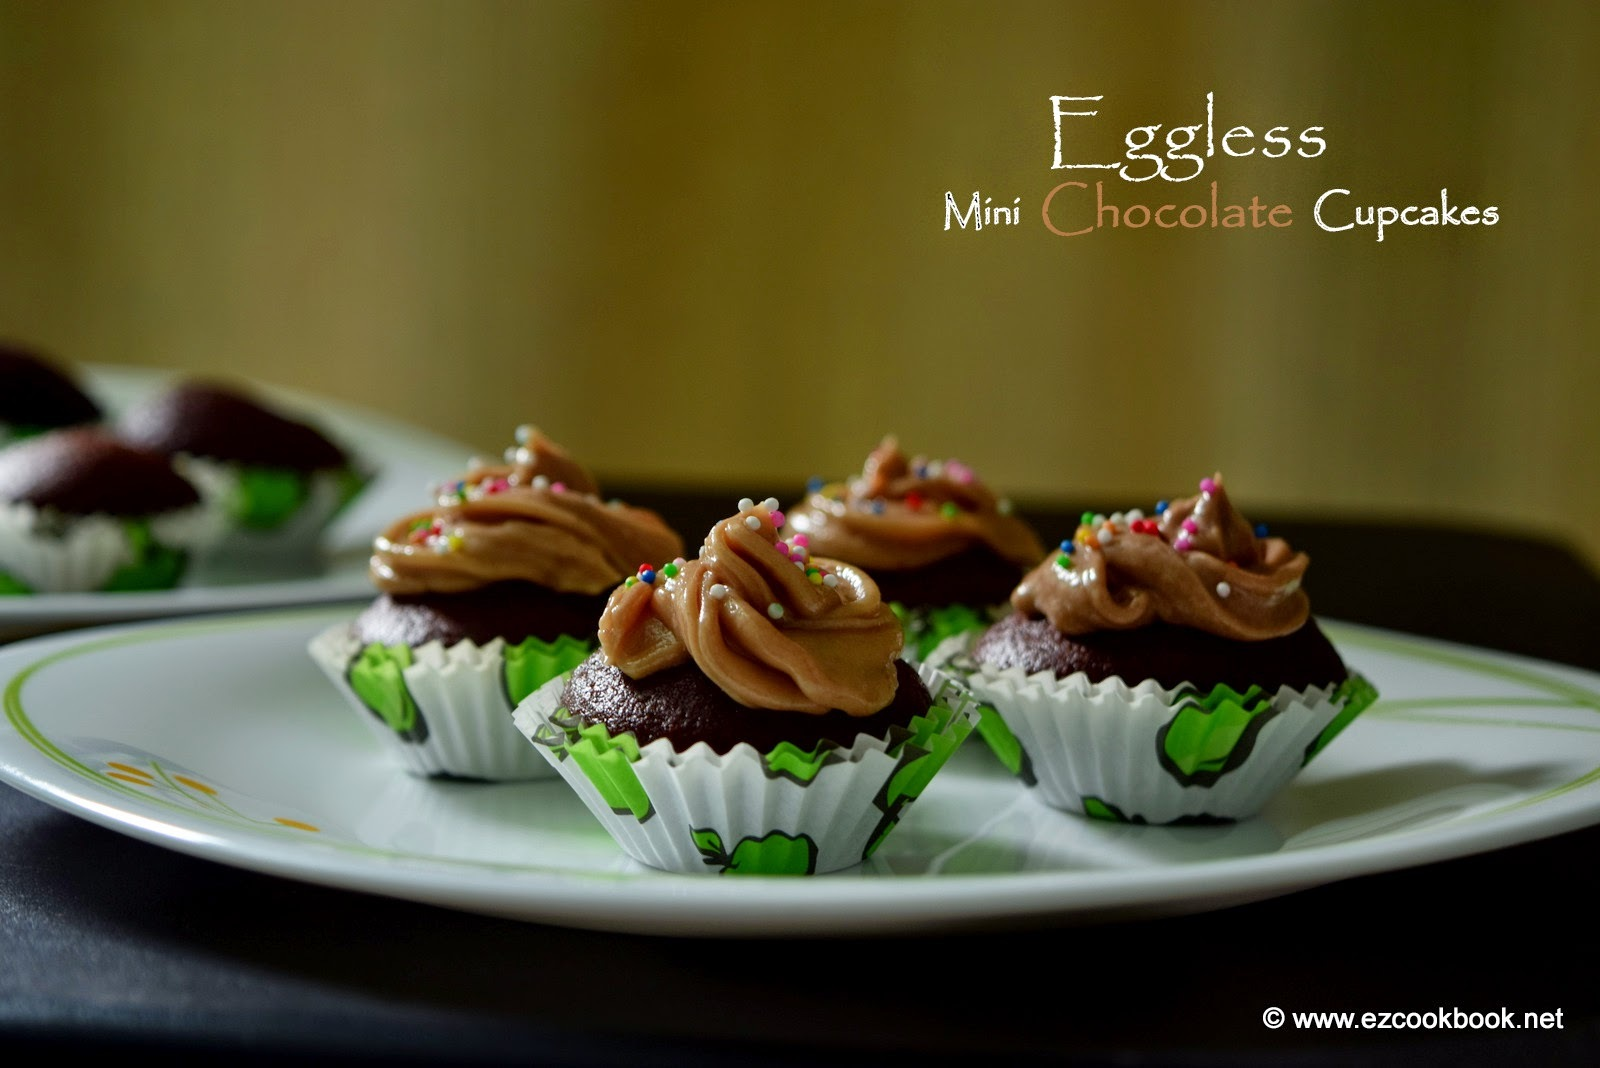 Eggless Mini Chocolate Cupcakes with  Buttercream Frosting